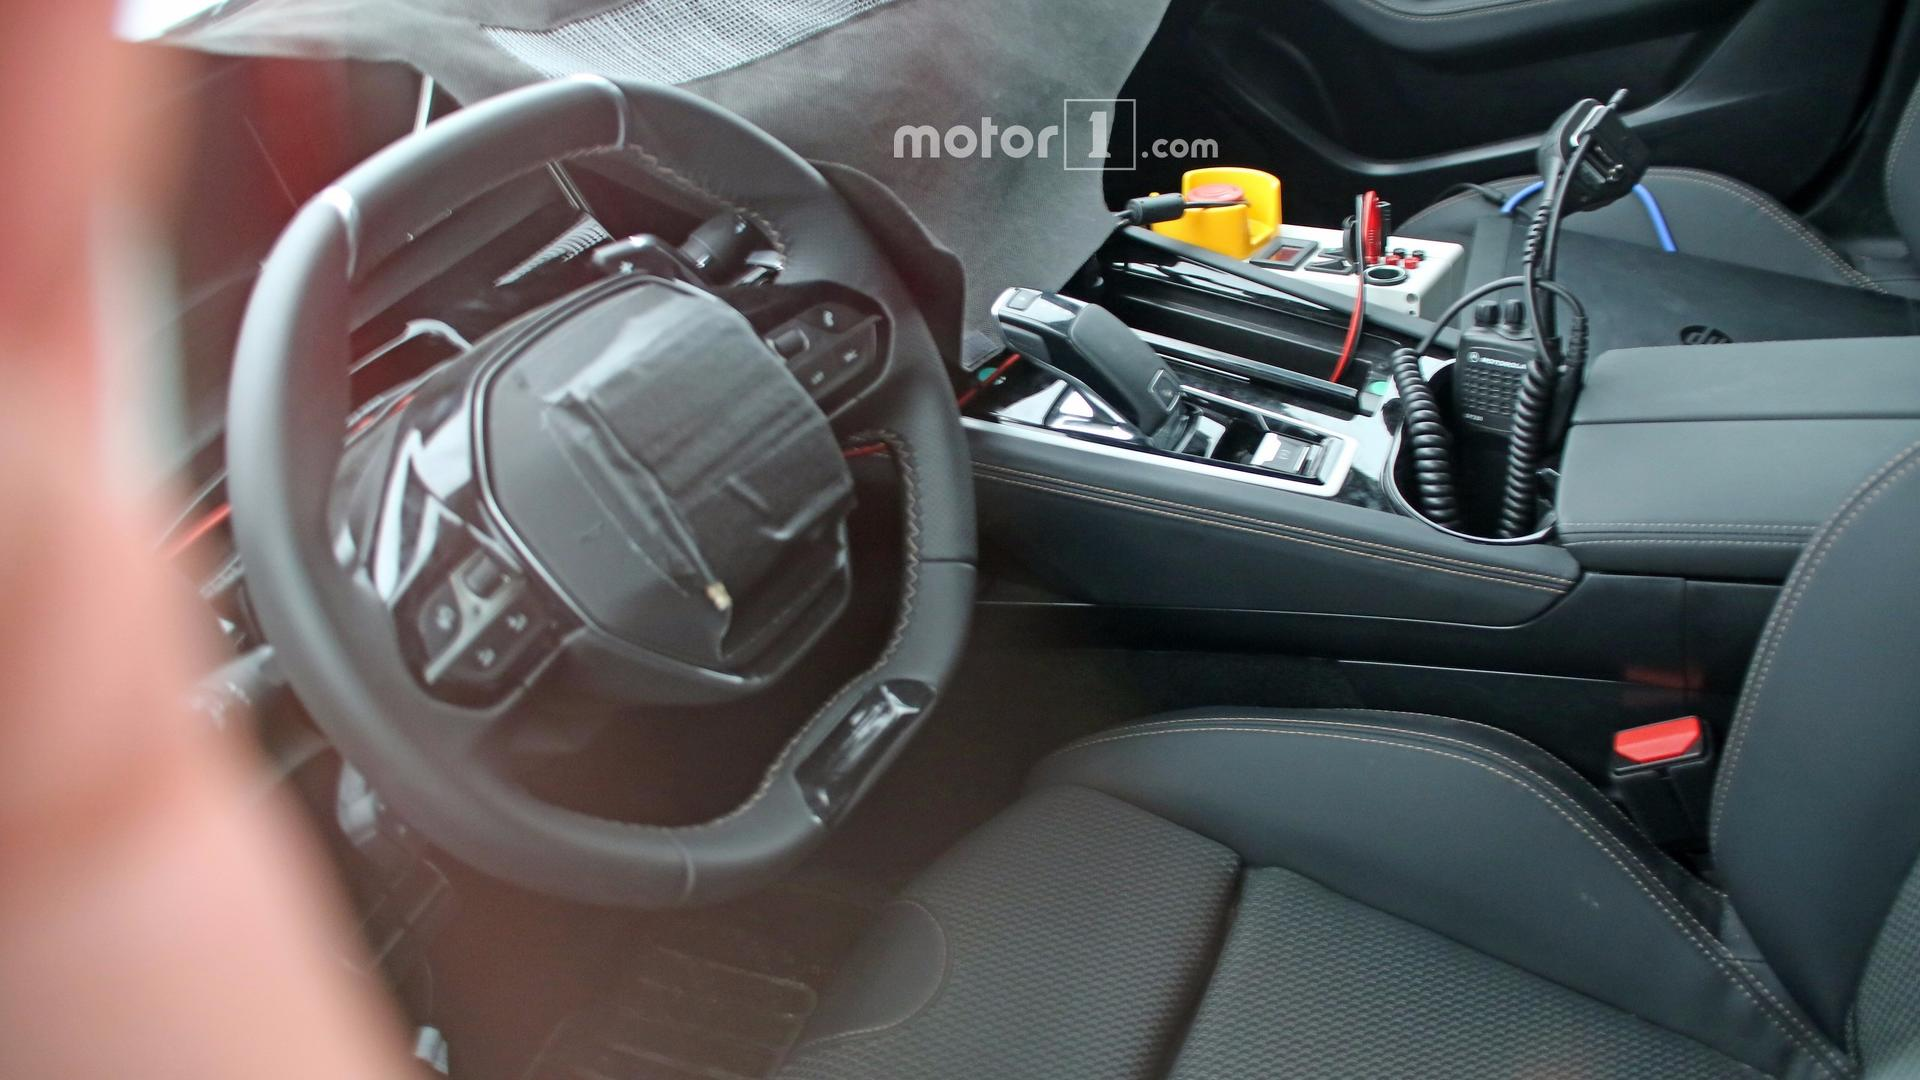 2018 peugeot 508 spied inside for the first time for Interieur 508 rxh